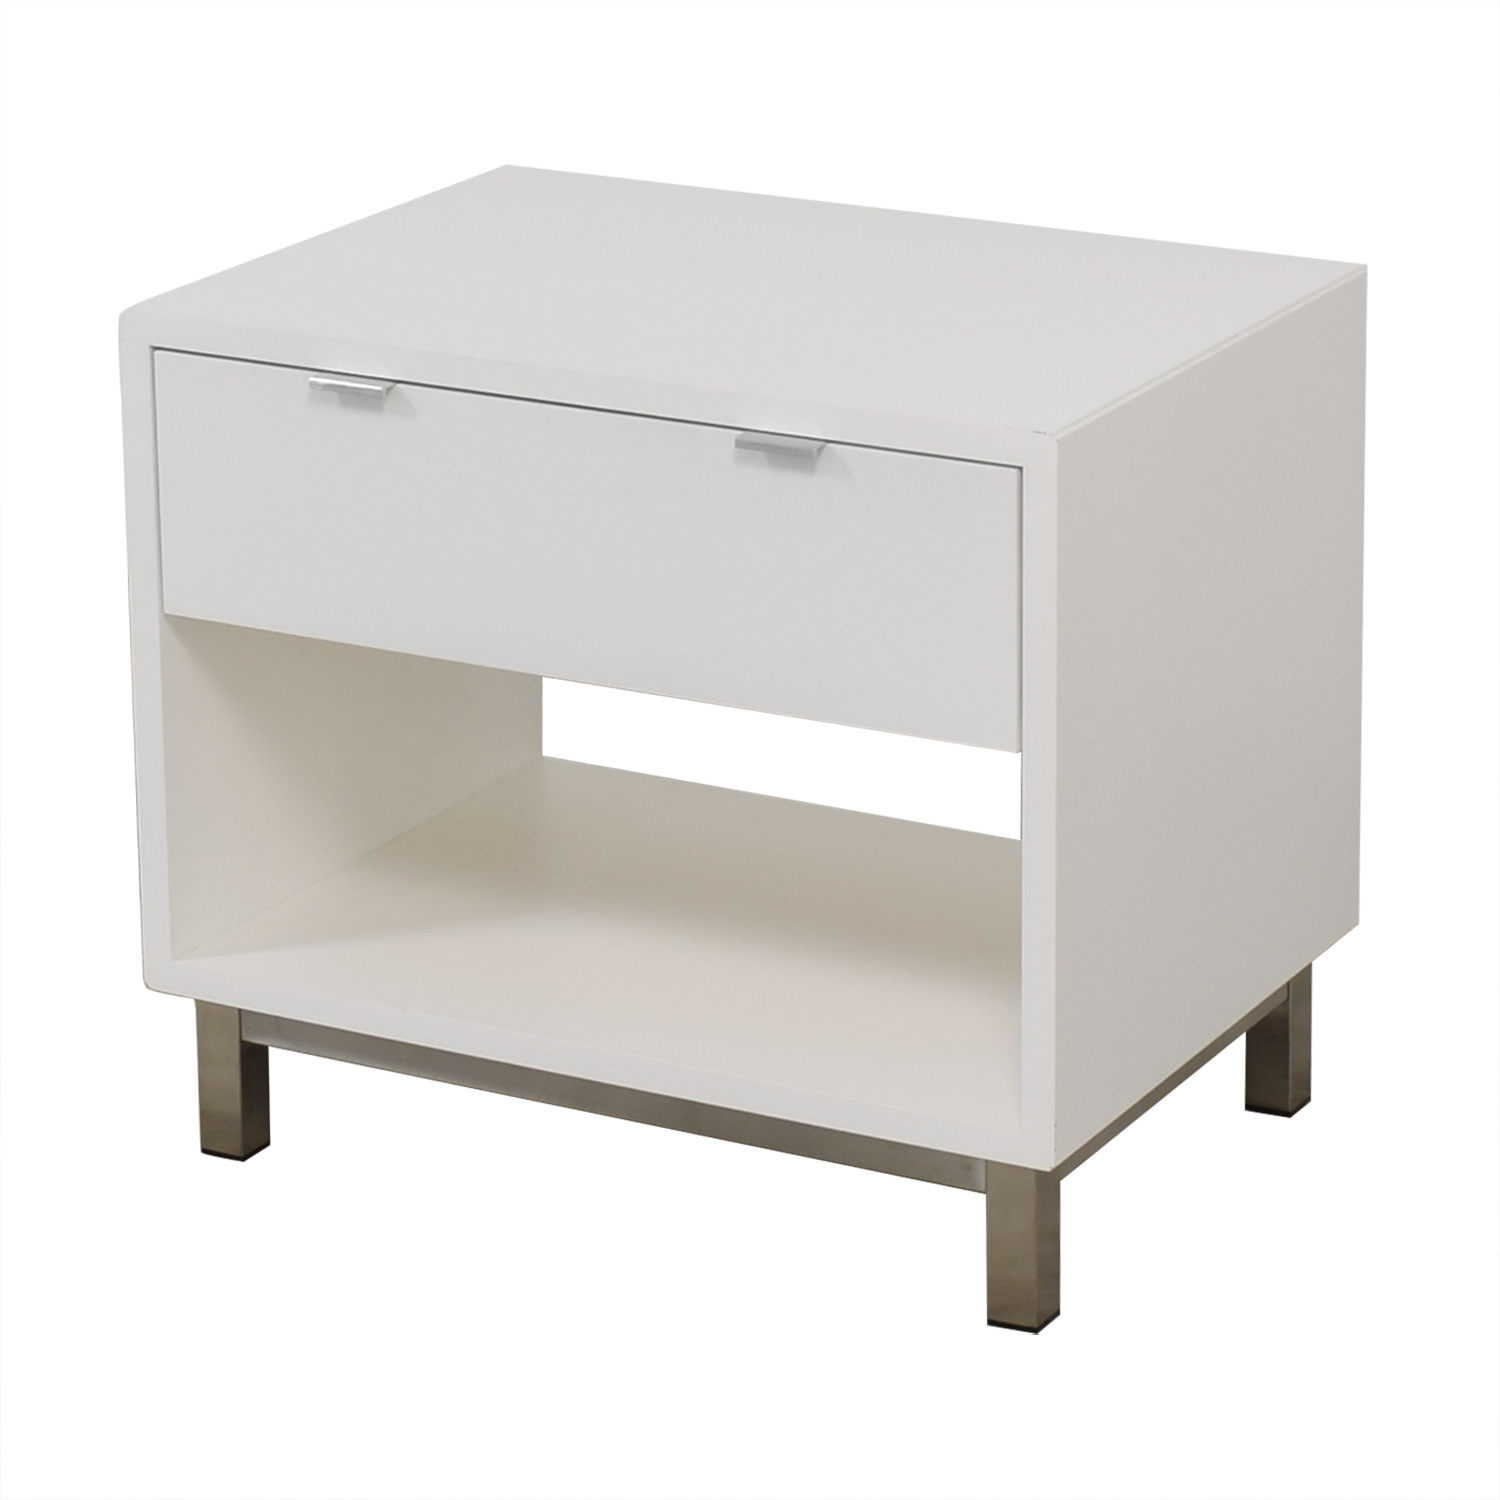 Room & Board Room and Board Copenhagen Nightstand on sale